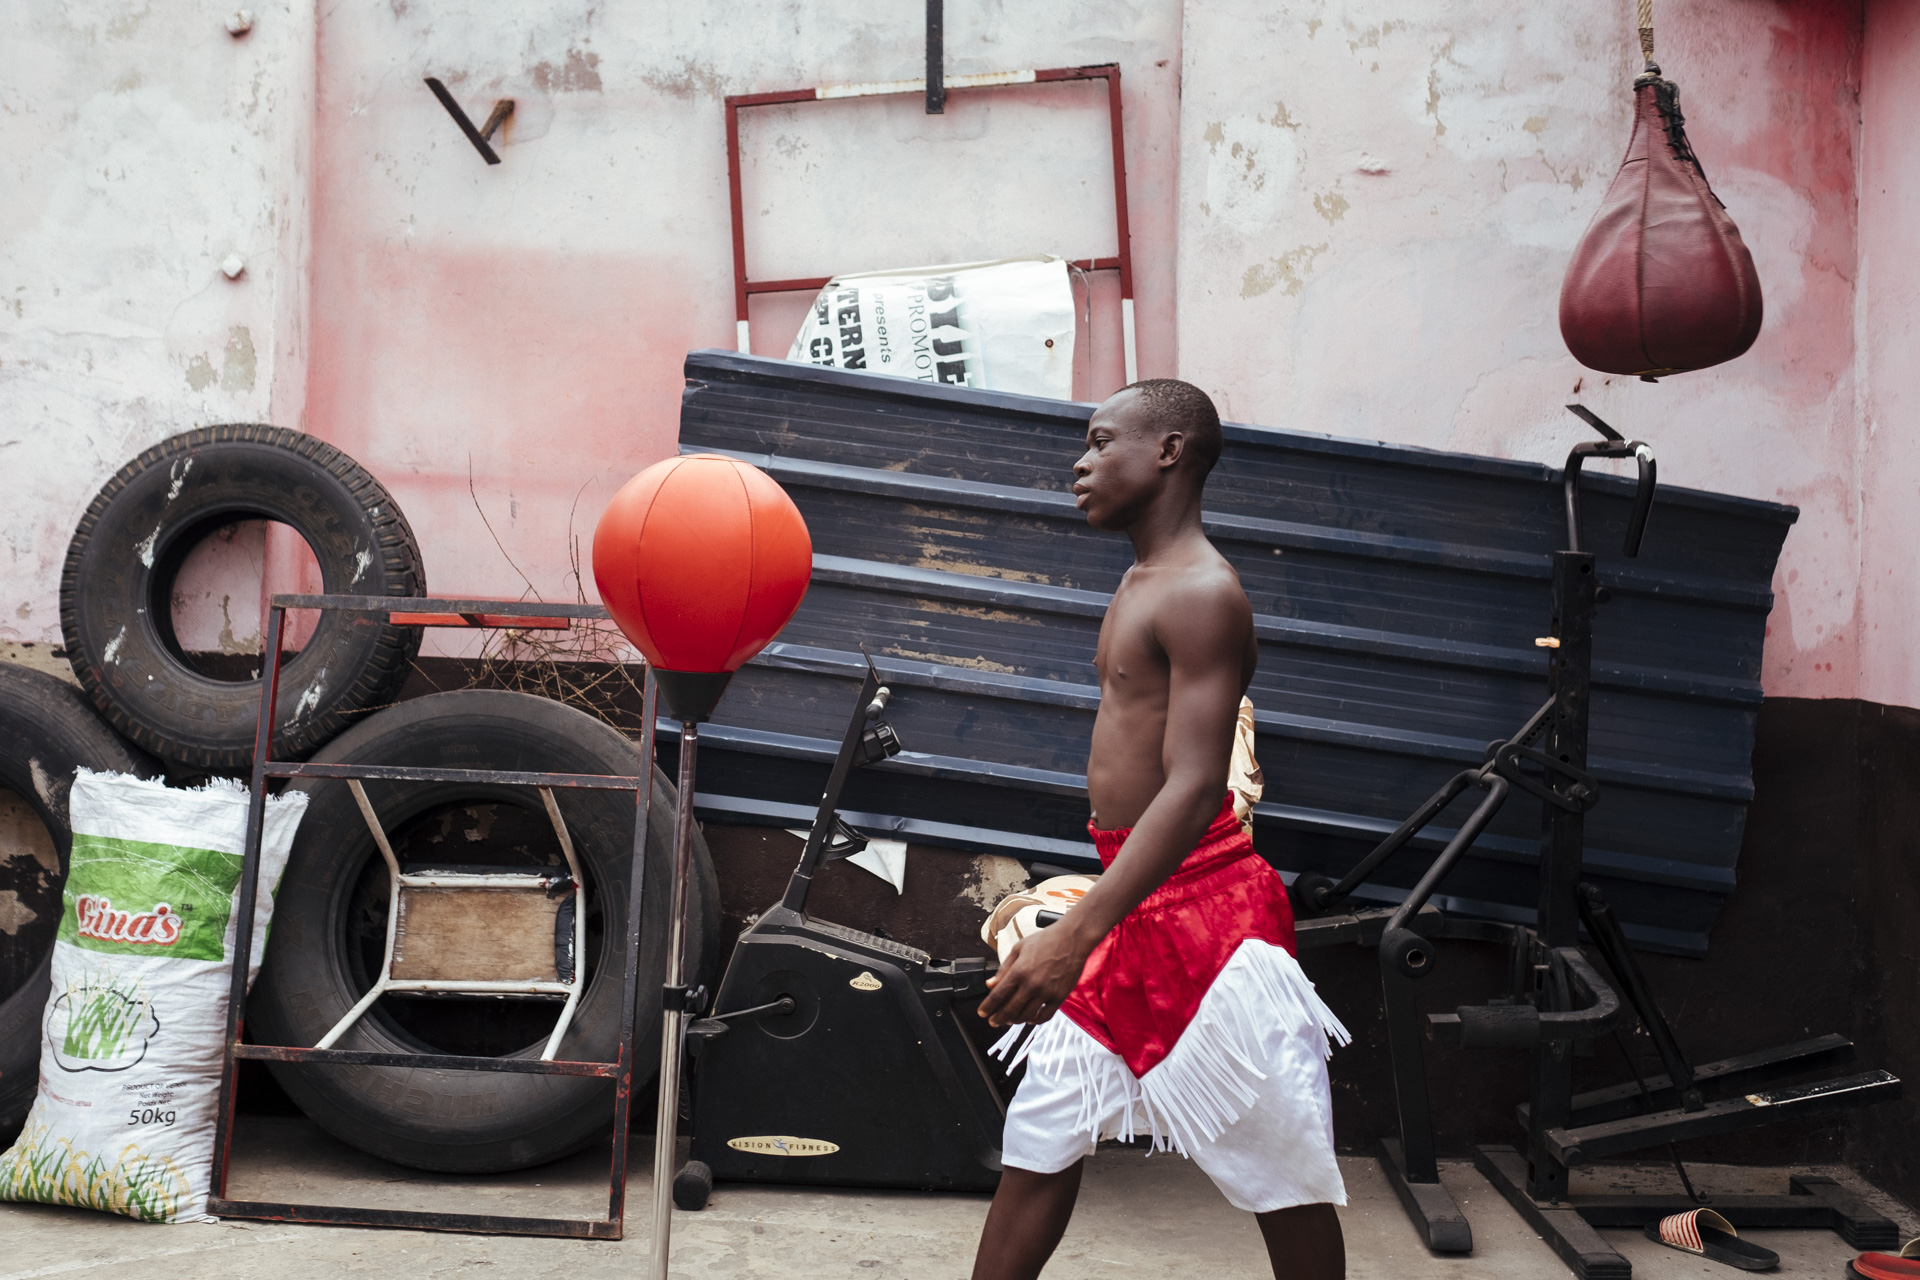 BOXING BUKOM. THE ROOTS OF «FIGHTING SPIRIT»